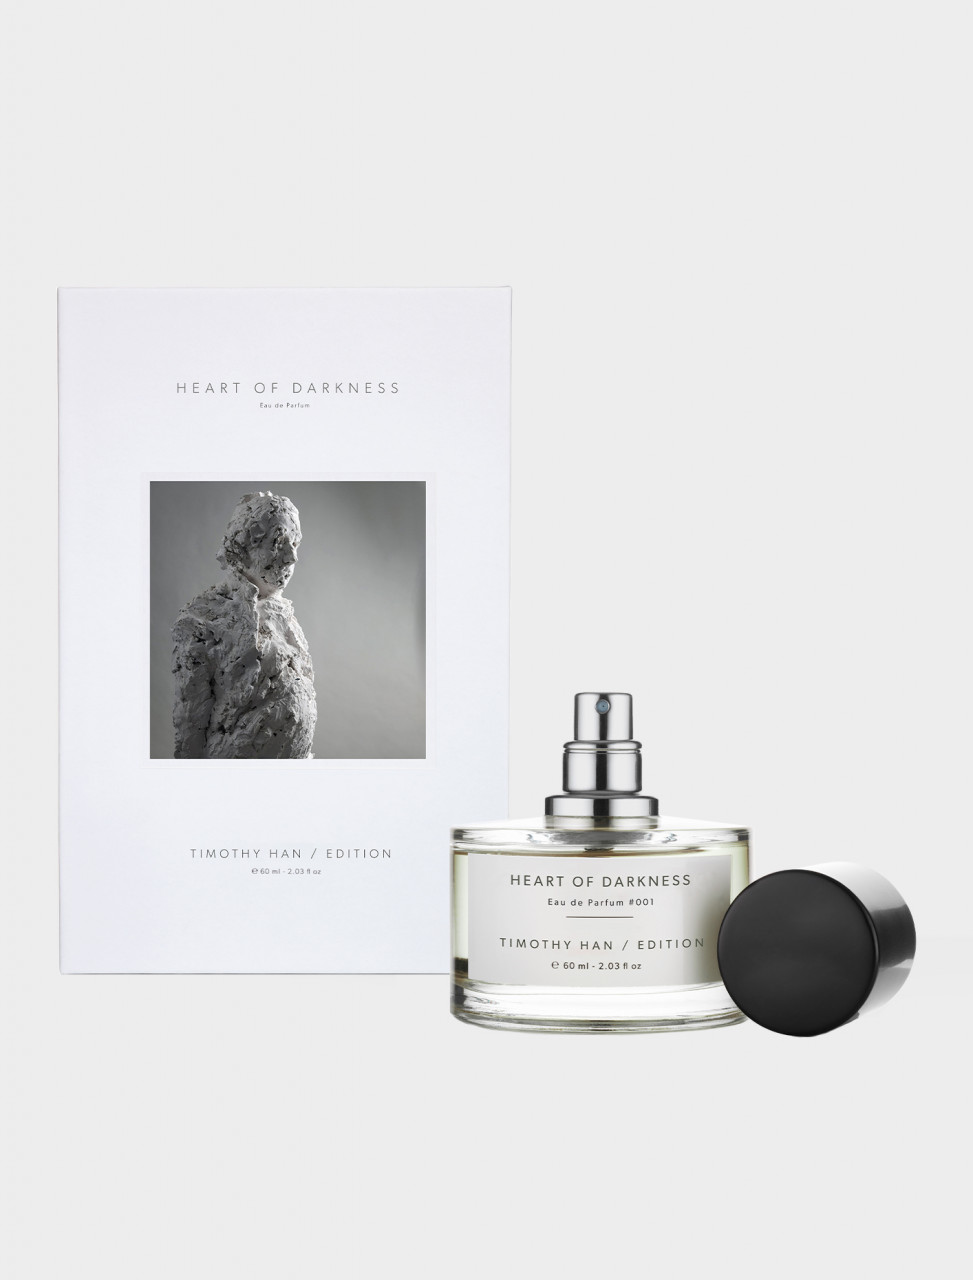 343-TH/HOD60ML TIMOTHY HAN EAU DE PARFUM HEART OF DARKNESS